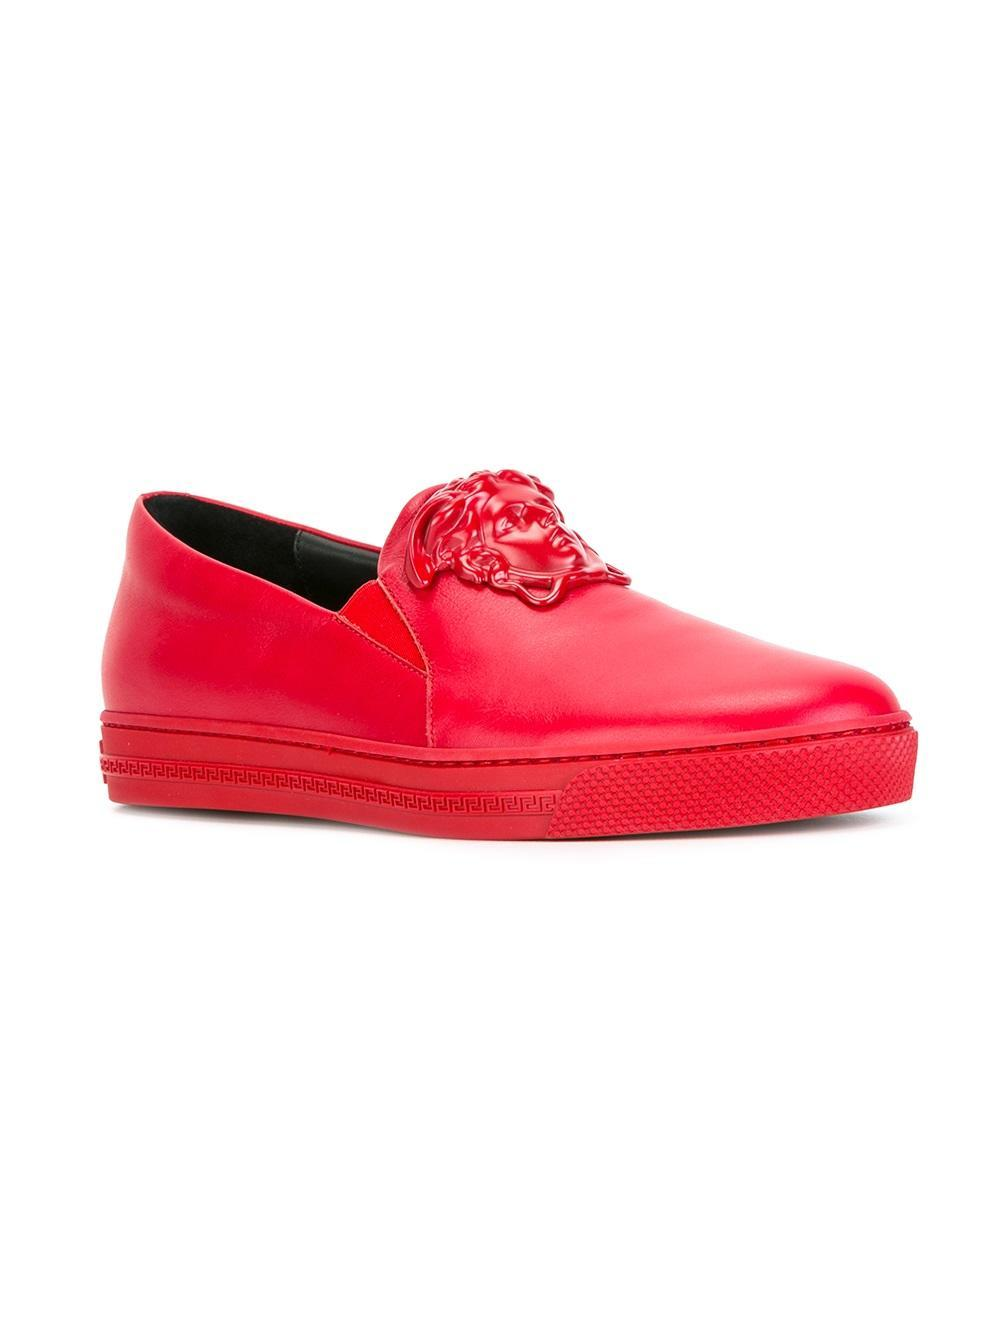 Lyst - Versace Palazzo Slip-on Sneakers in Red